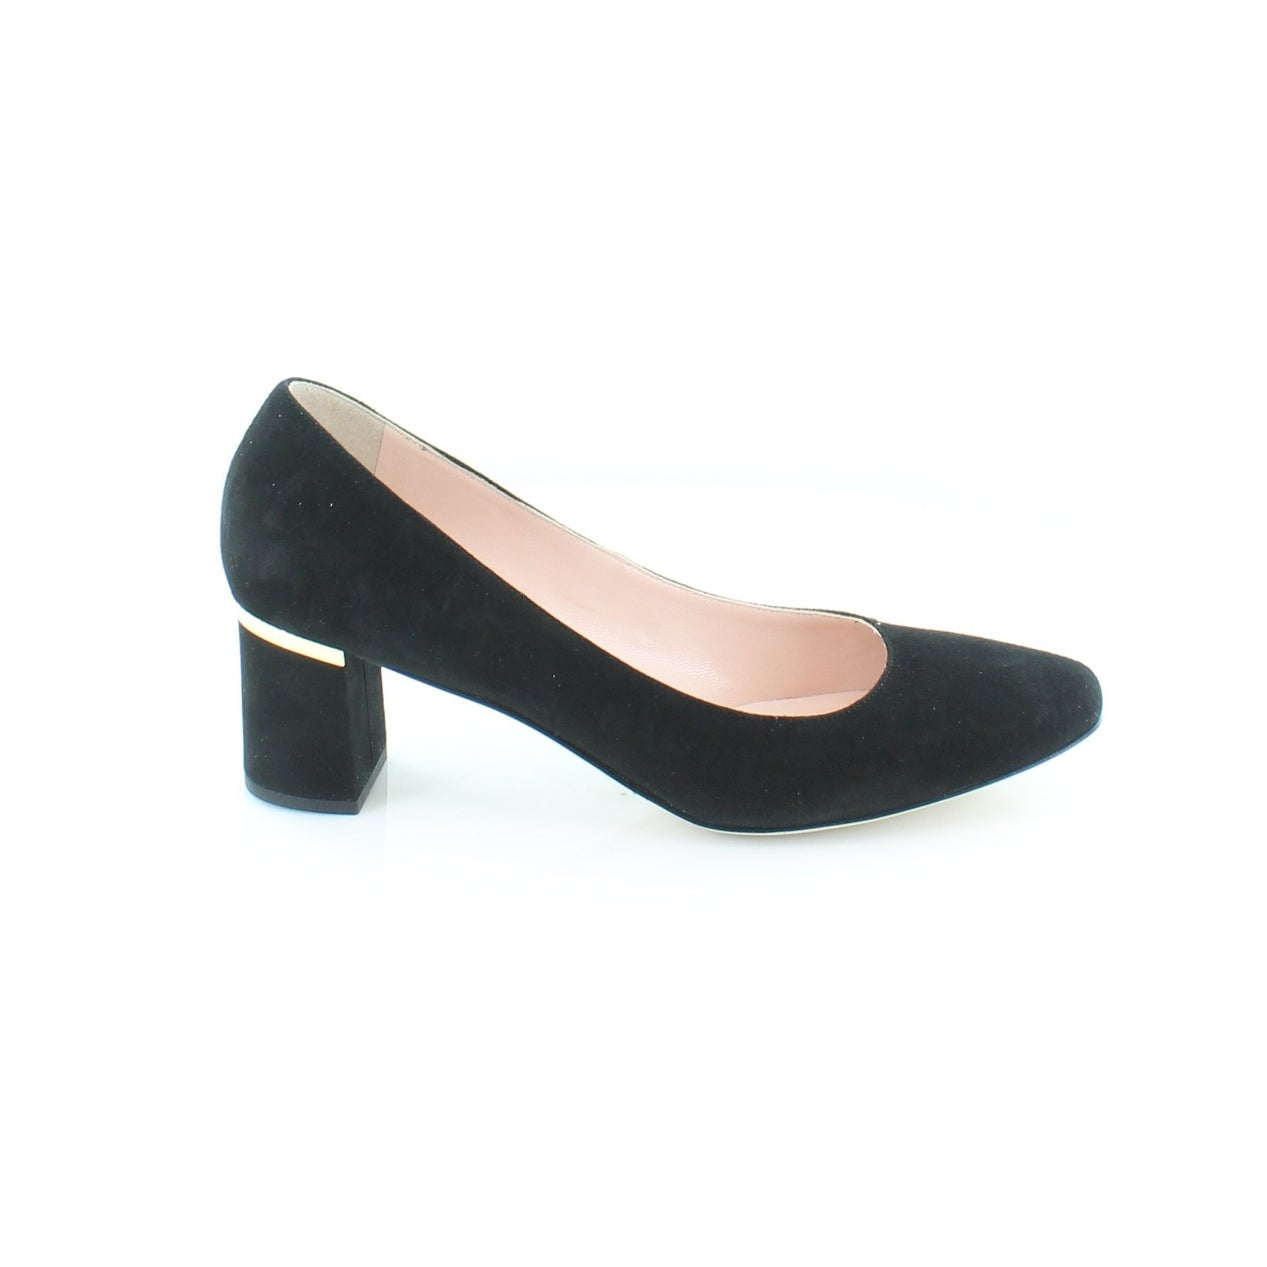 c0d3bcd5eb Shop Kate Spade Dolores Too Women's Heels Black - Free Shipping Today -  Overstock - 21550944